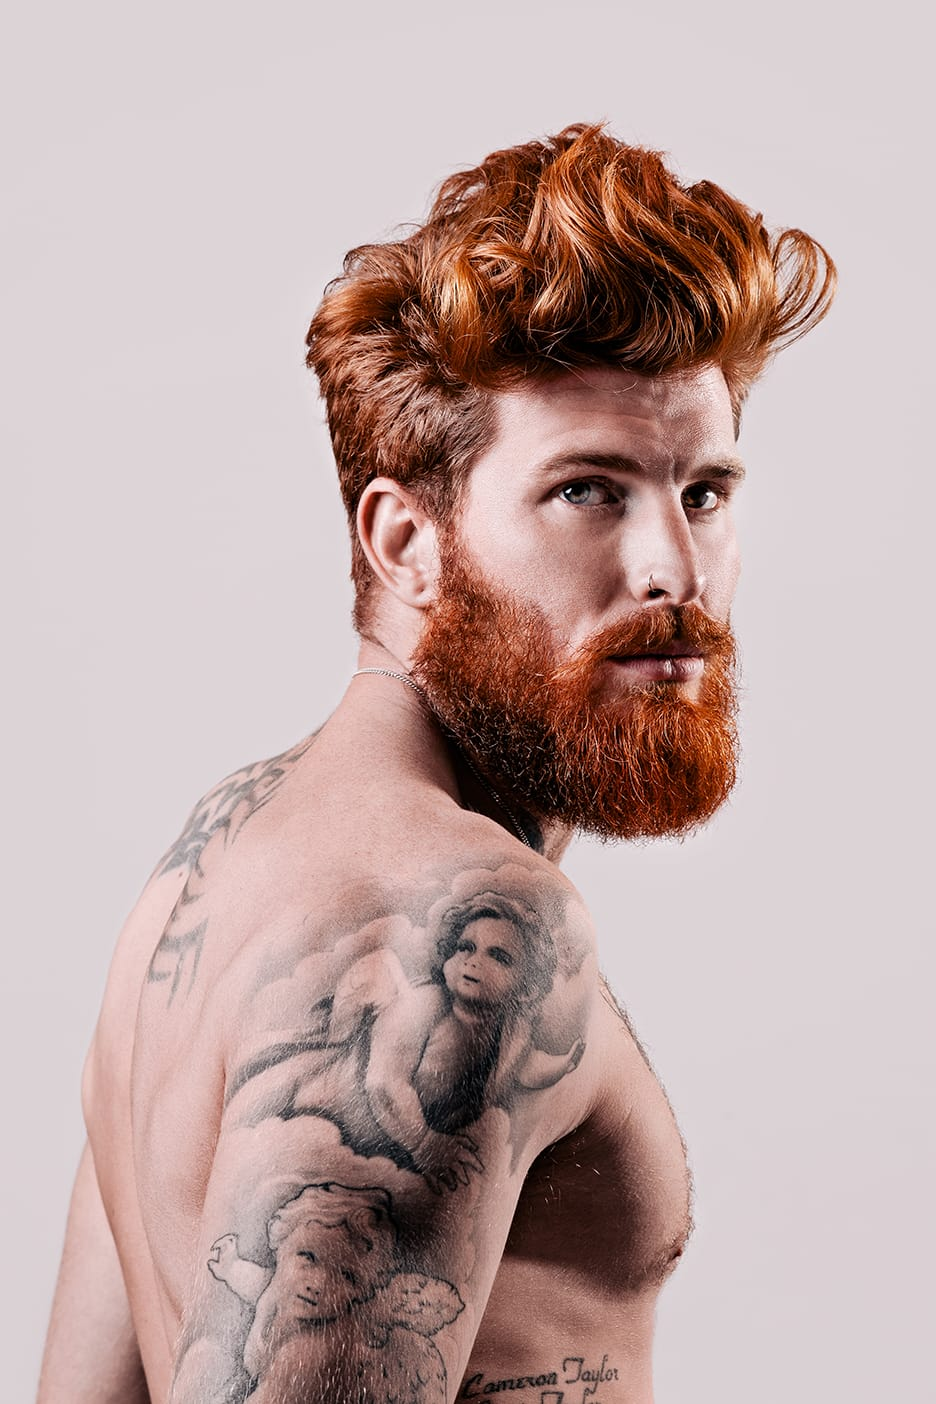 Kickstarting Movember With Tattooed Men With Beards